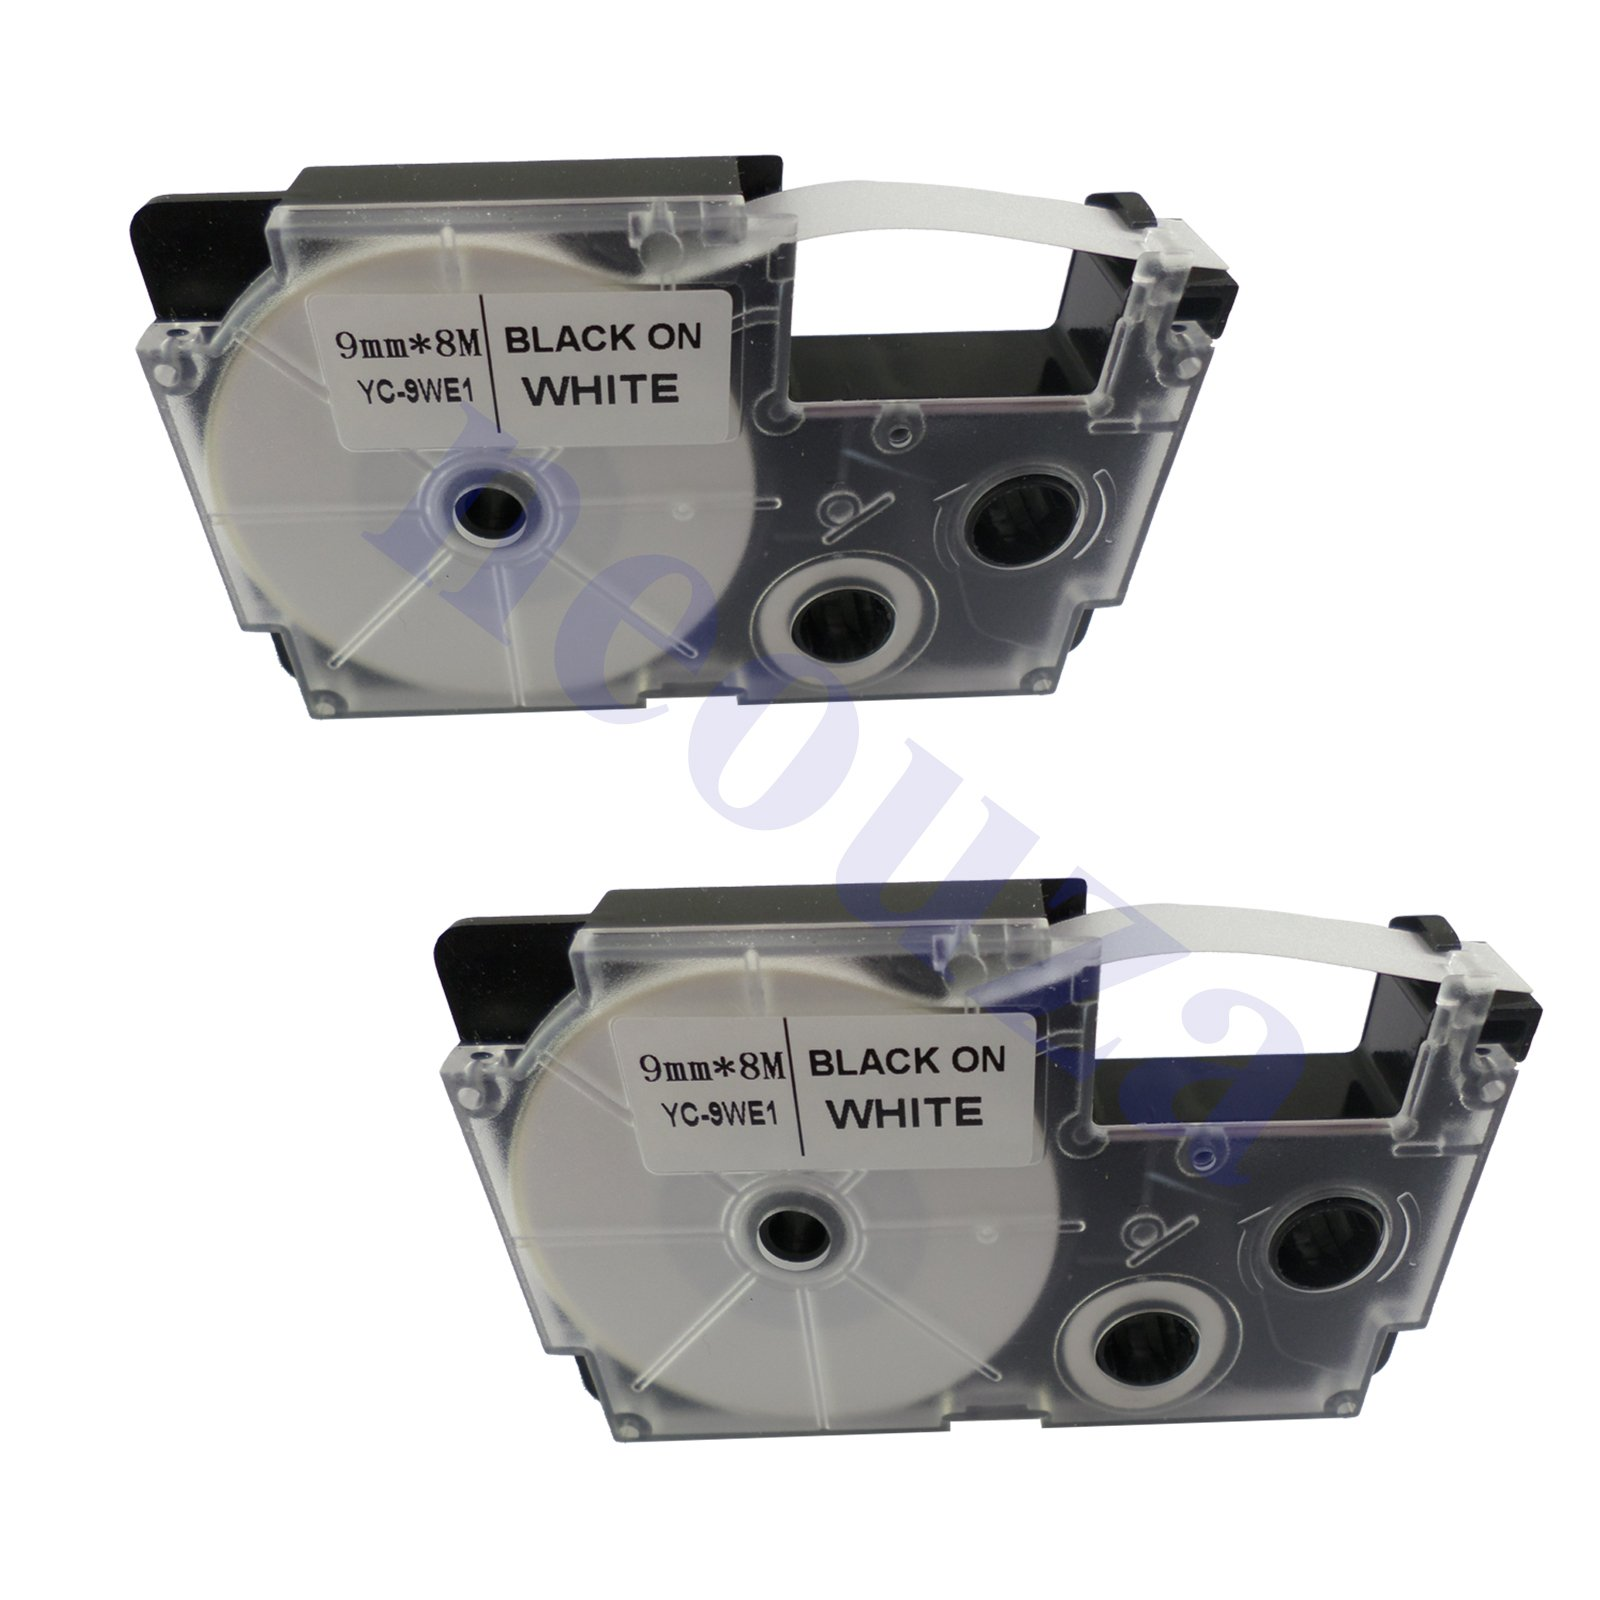 NEOUZA 2PK Compatible for Casio EZ-Label Tape 9mm x 8m 0.35'' x 26' LABEL IT! (XR-9WE2S Black on White)